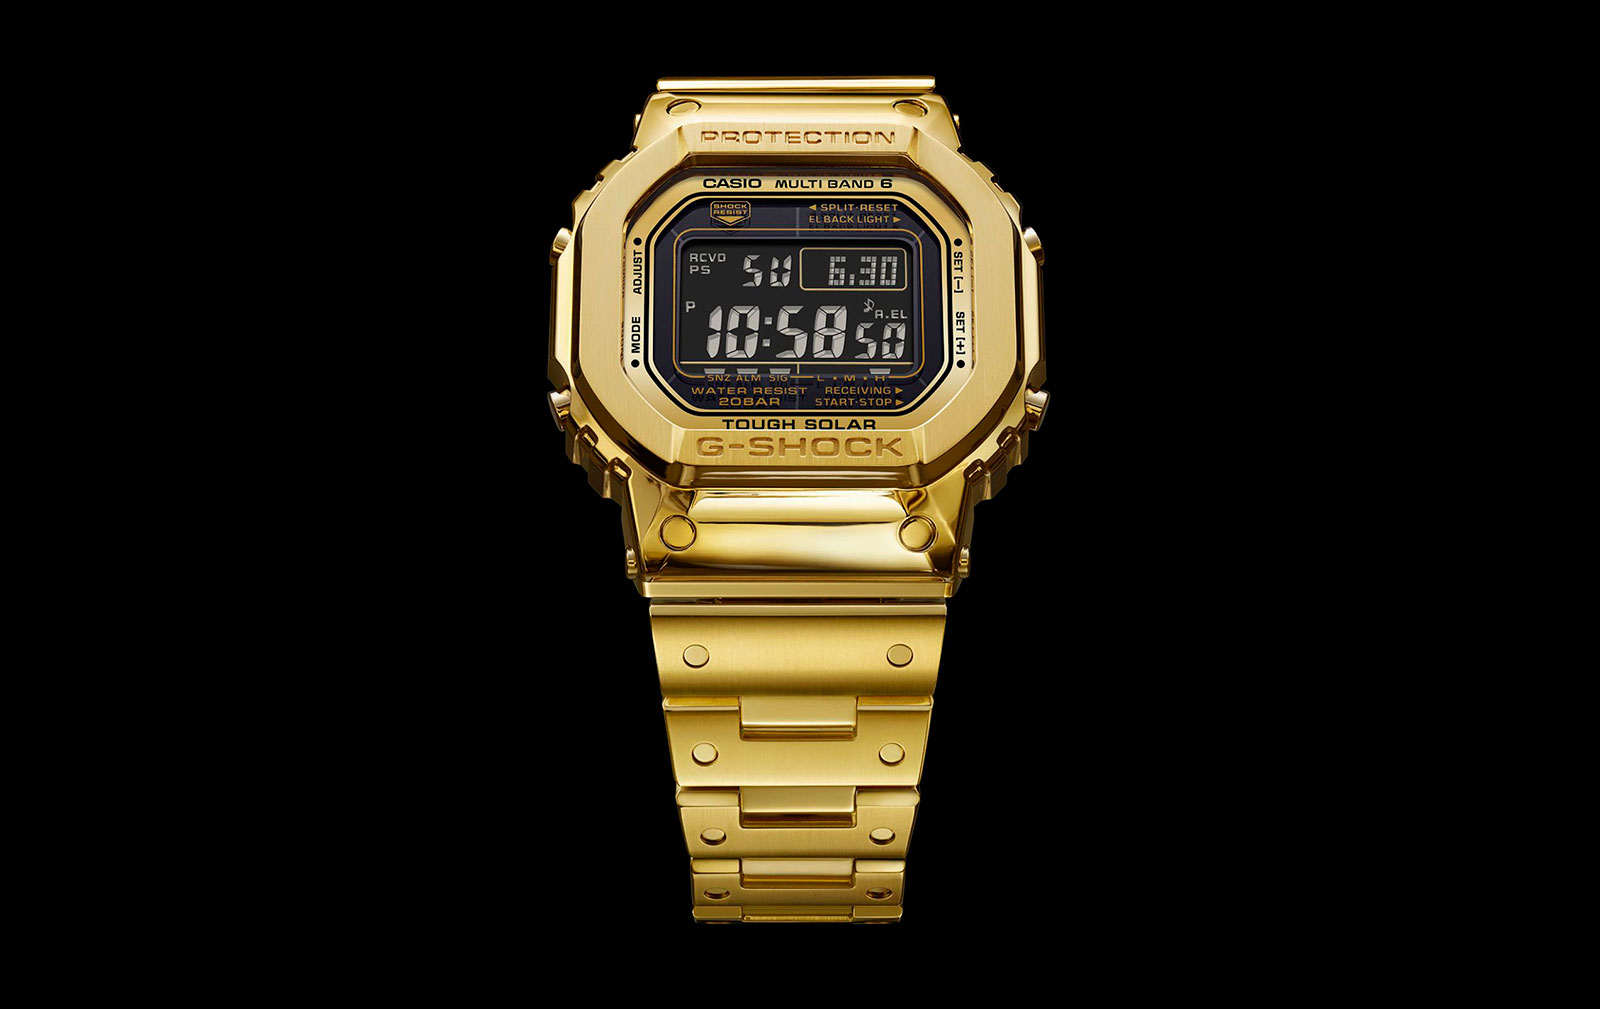 Pure_Gold_G-SHOCK_18k_G-D5000-9JR-3